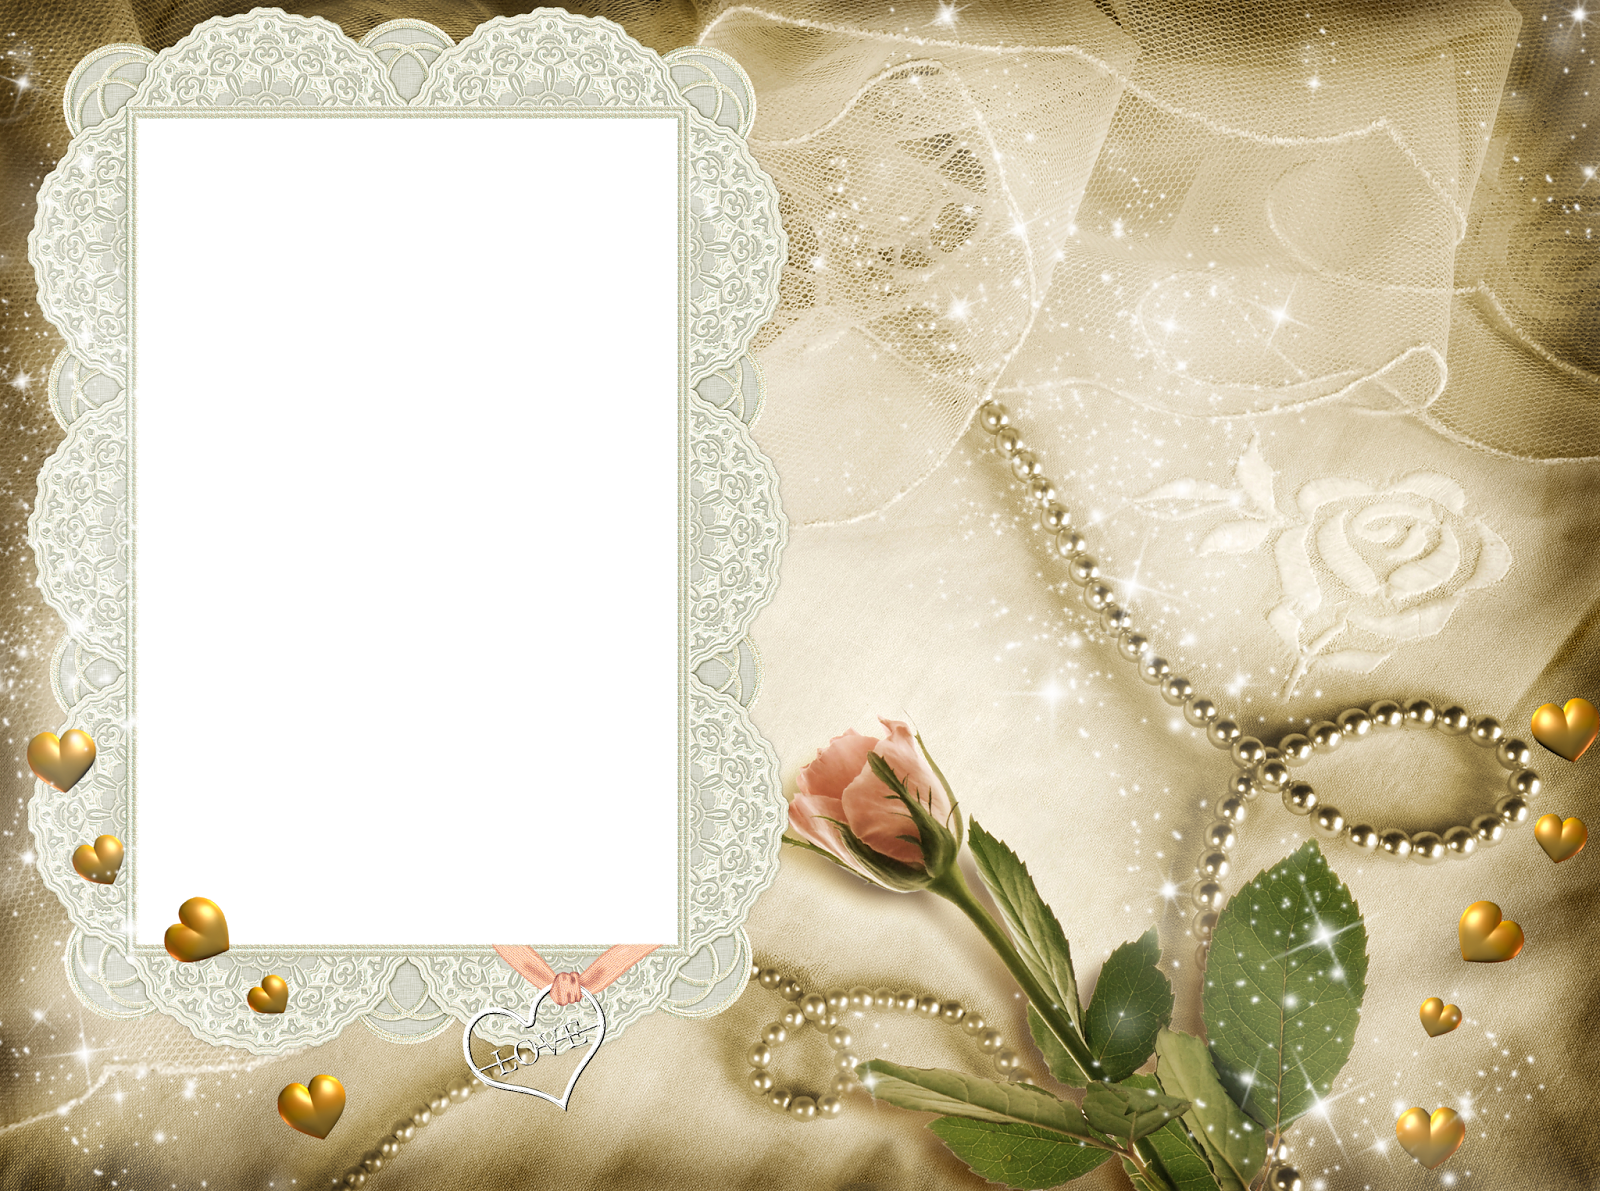 Flower Curtain Transparent Tulle Curtains Png Window By Collect And Creat On Deviantart